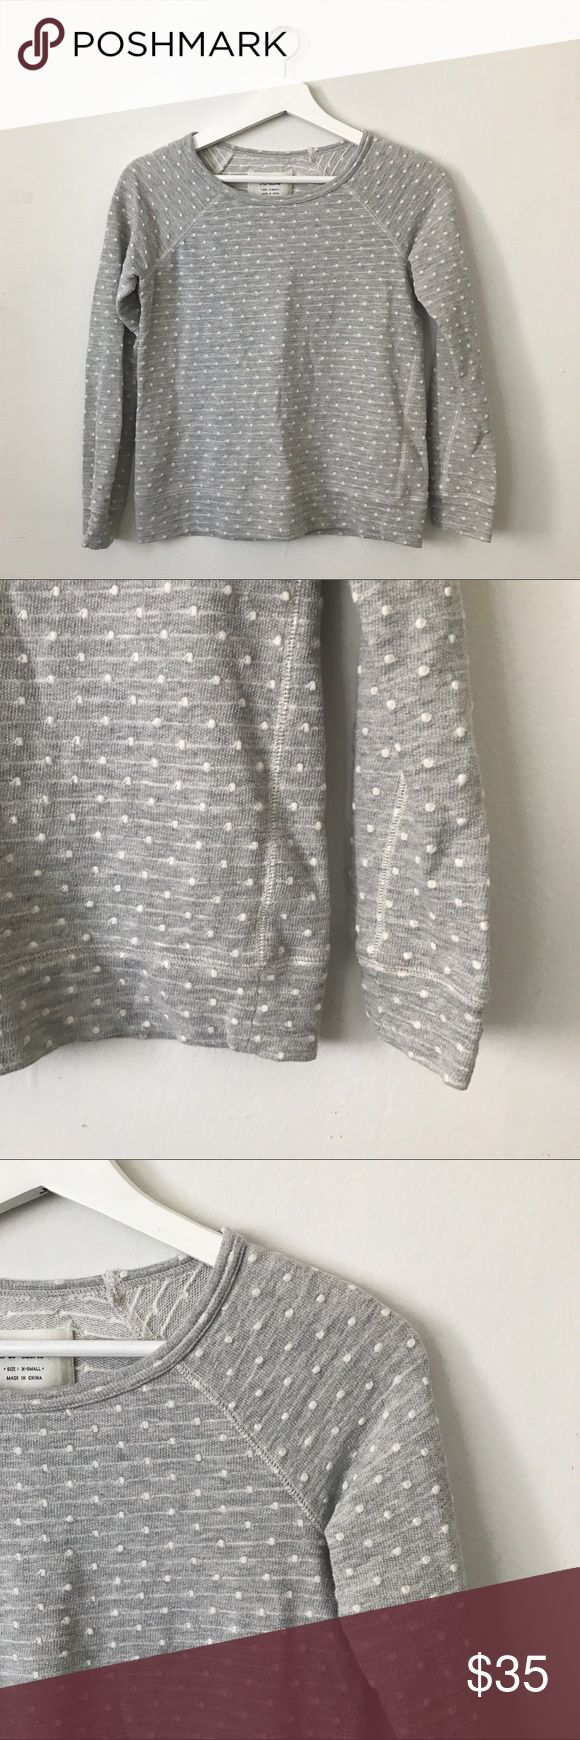 """MADEWELL Hi-Line Pullover Long Sleeve Sweater All-over grey polka dot pullover sweater by Hi Line for Madewell. Long sleeves. Textured polka dots. Has a lightweight sweatshirt feel. Size X-Small. Armpit to armpit = 16"""", Overall top to bottom = 21"""". Cozy & perfect for fall! In excellent, pre-worn condition. Madewell Sweaters Crew & Scoop Necks"""